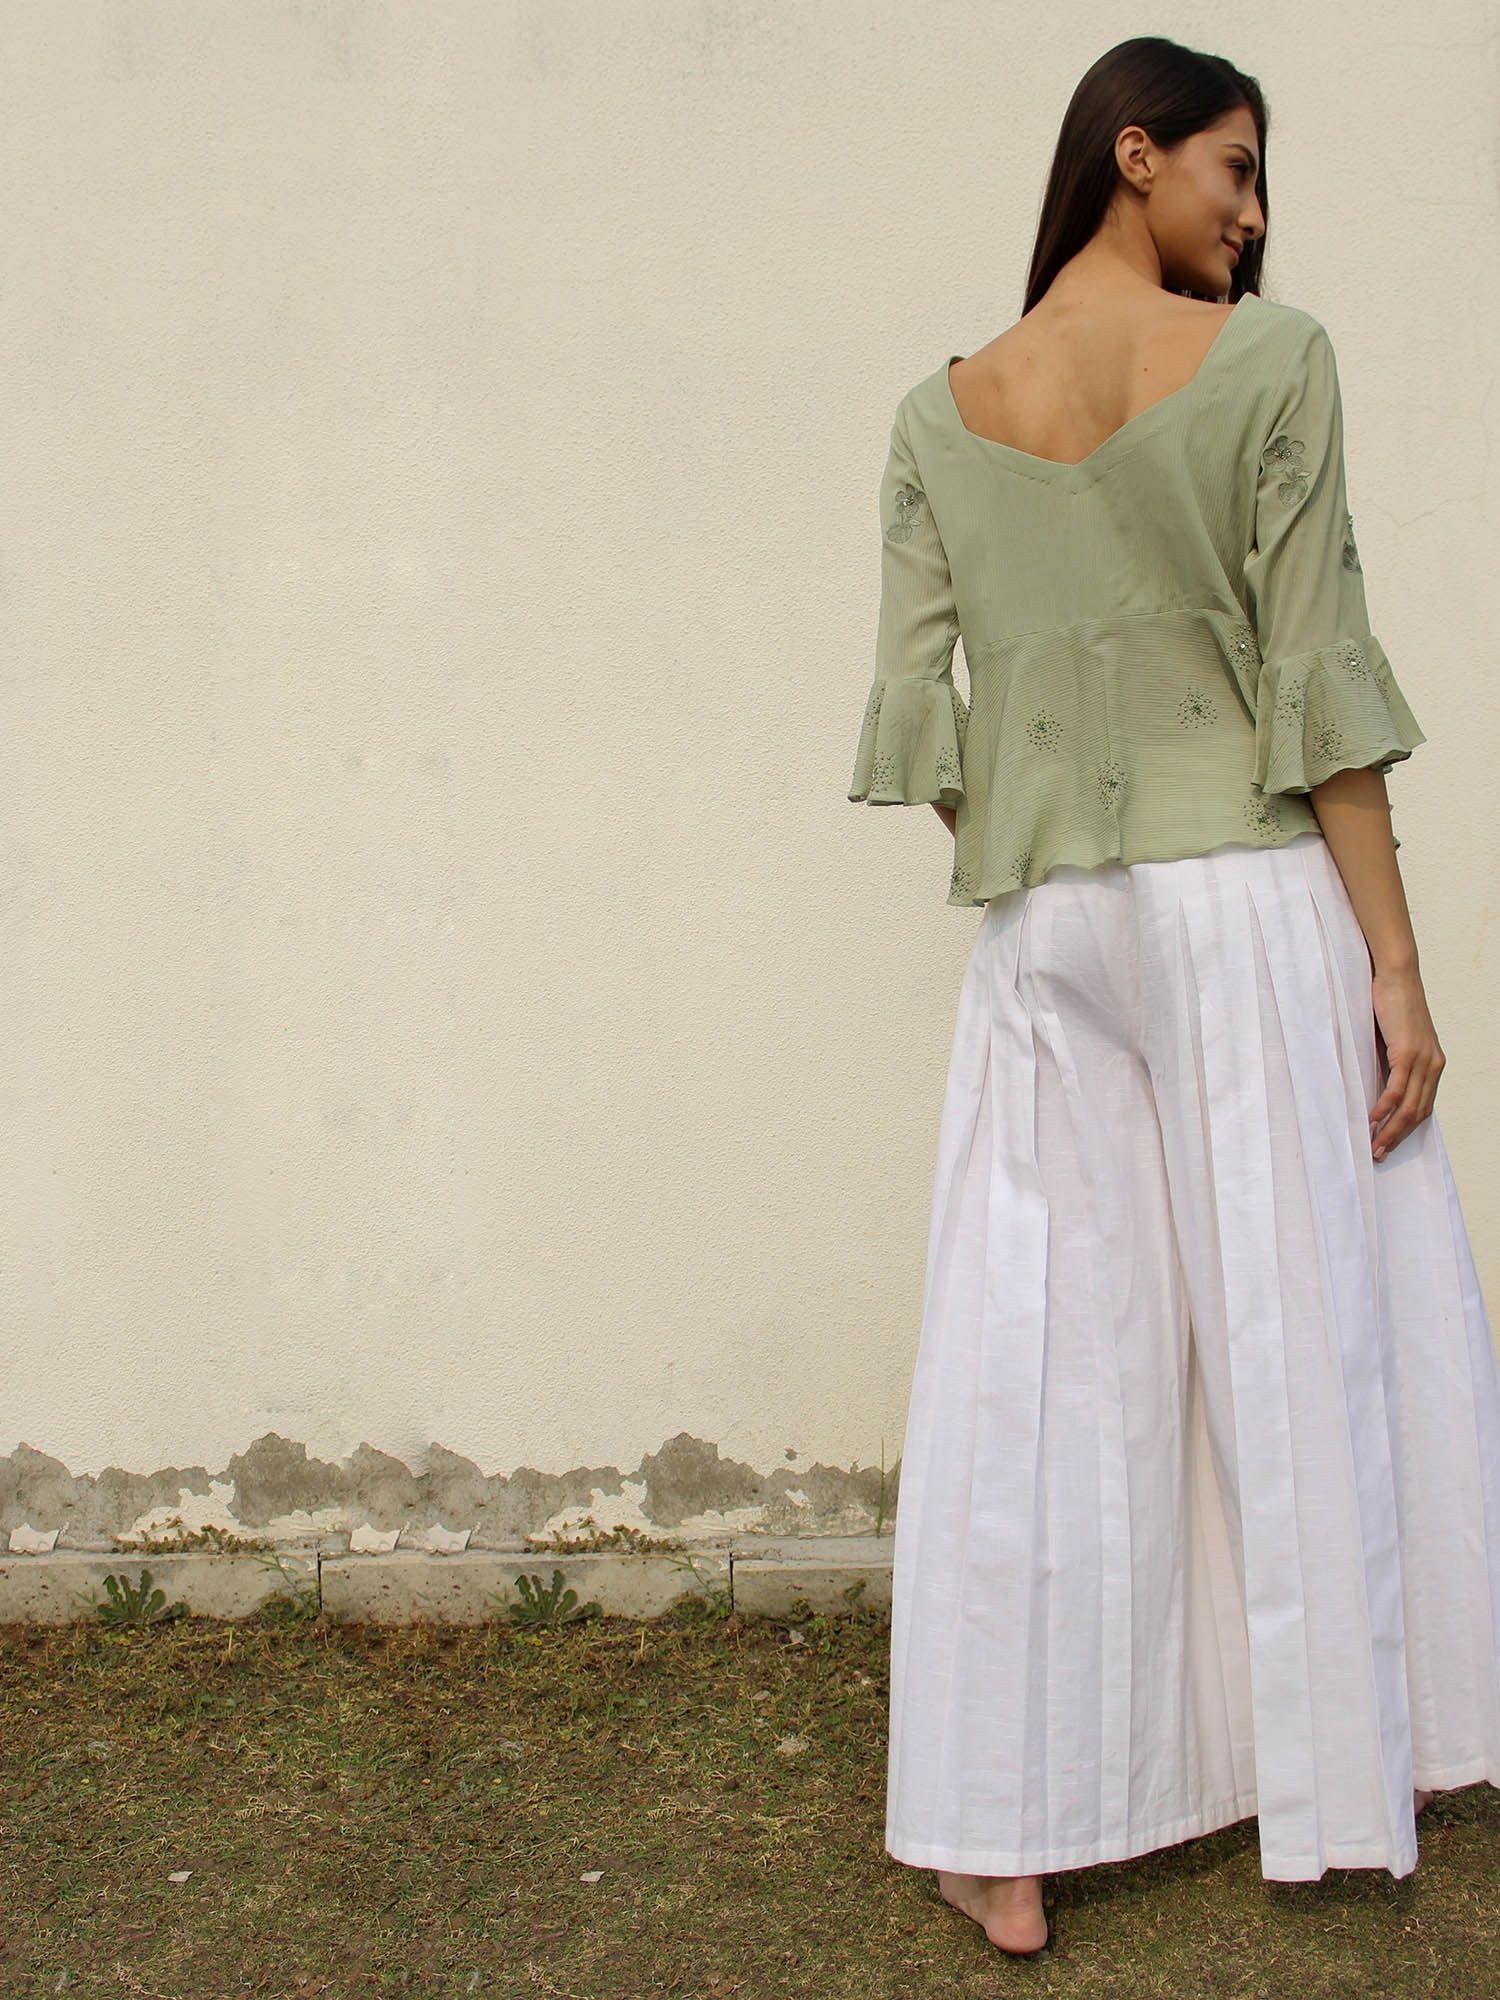 6d0e832a273 Anupma Devika - Koyi Taro Shirts Tops and Crop Tops : Buy Anupma ...